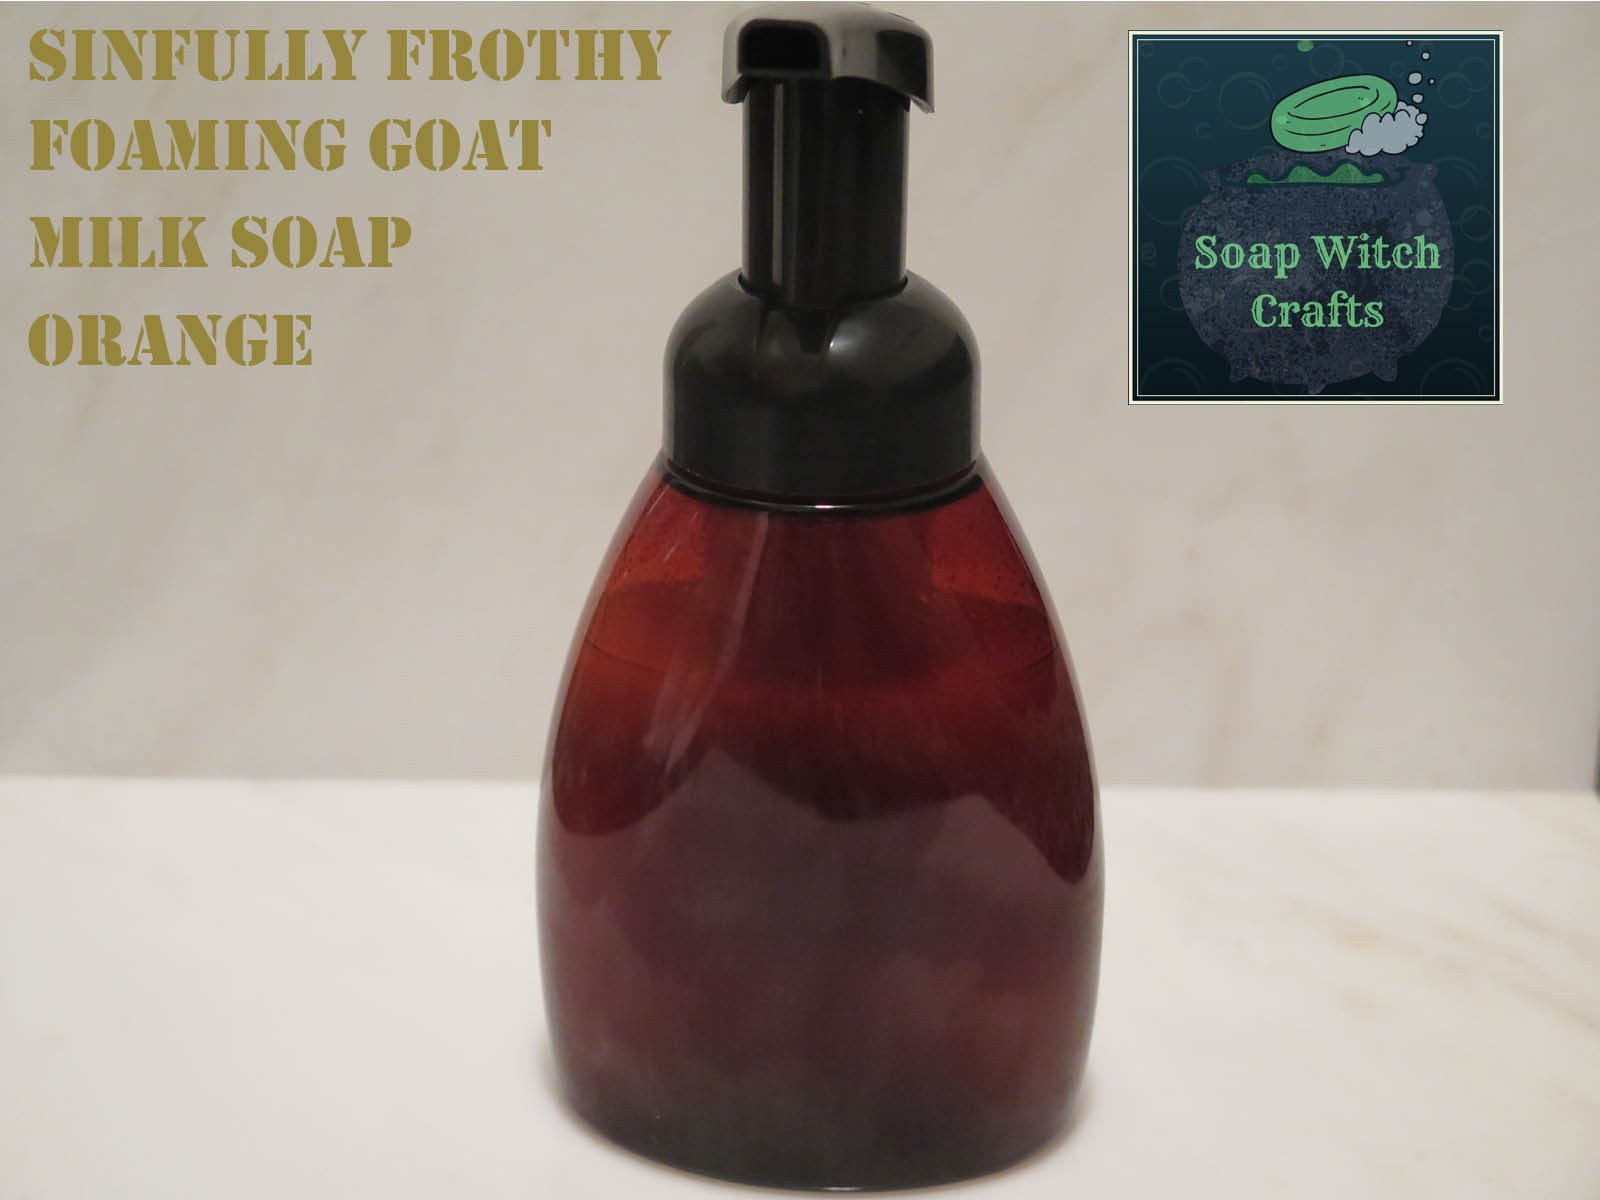 Sinfully Frothy Foaming Goat Milk Soap - Orange Scented